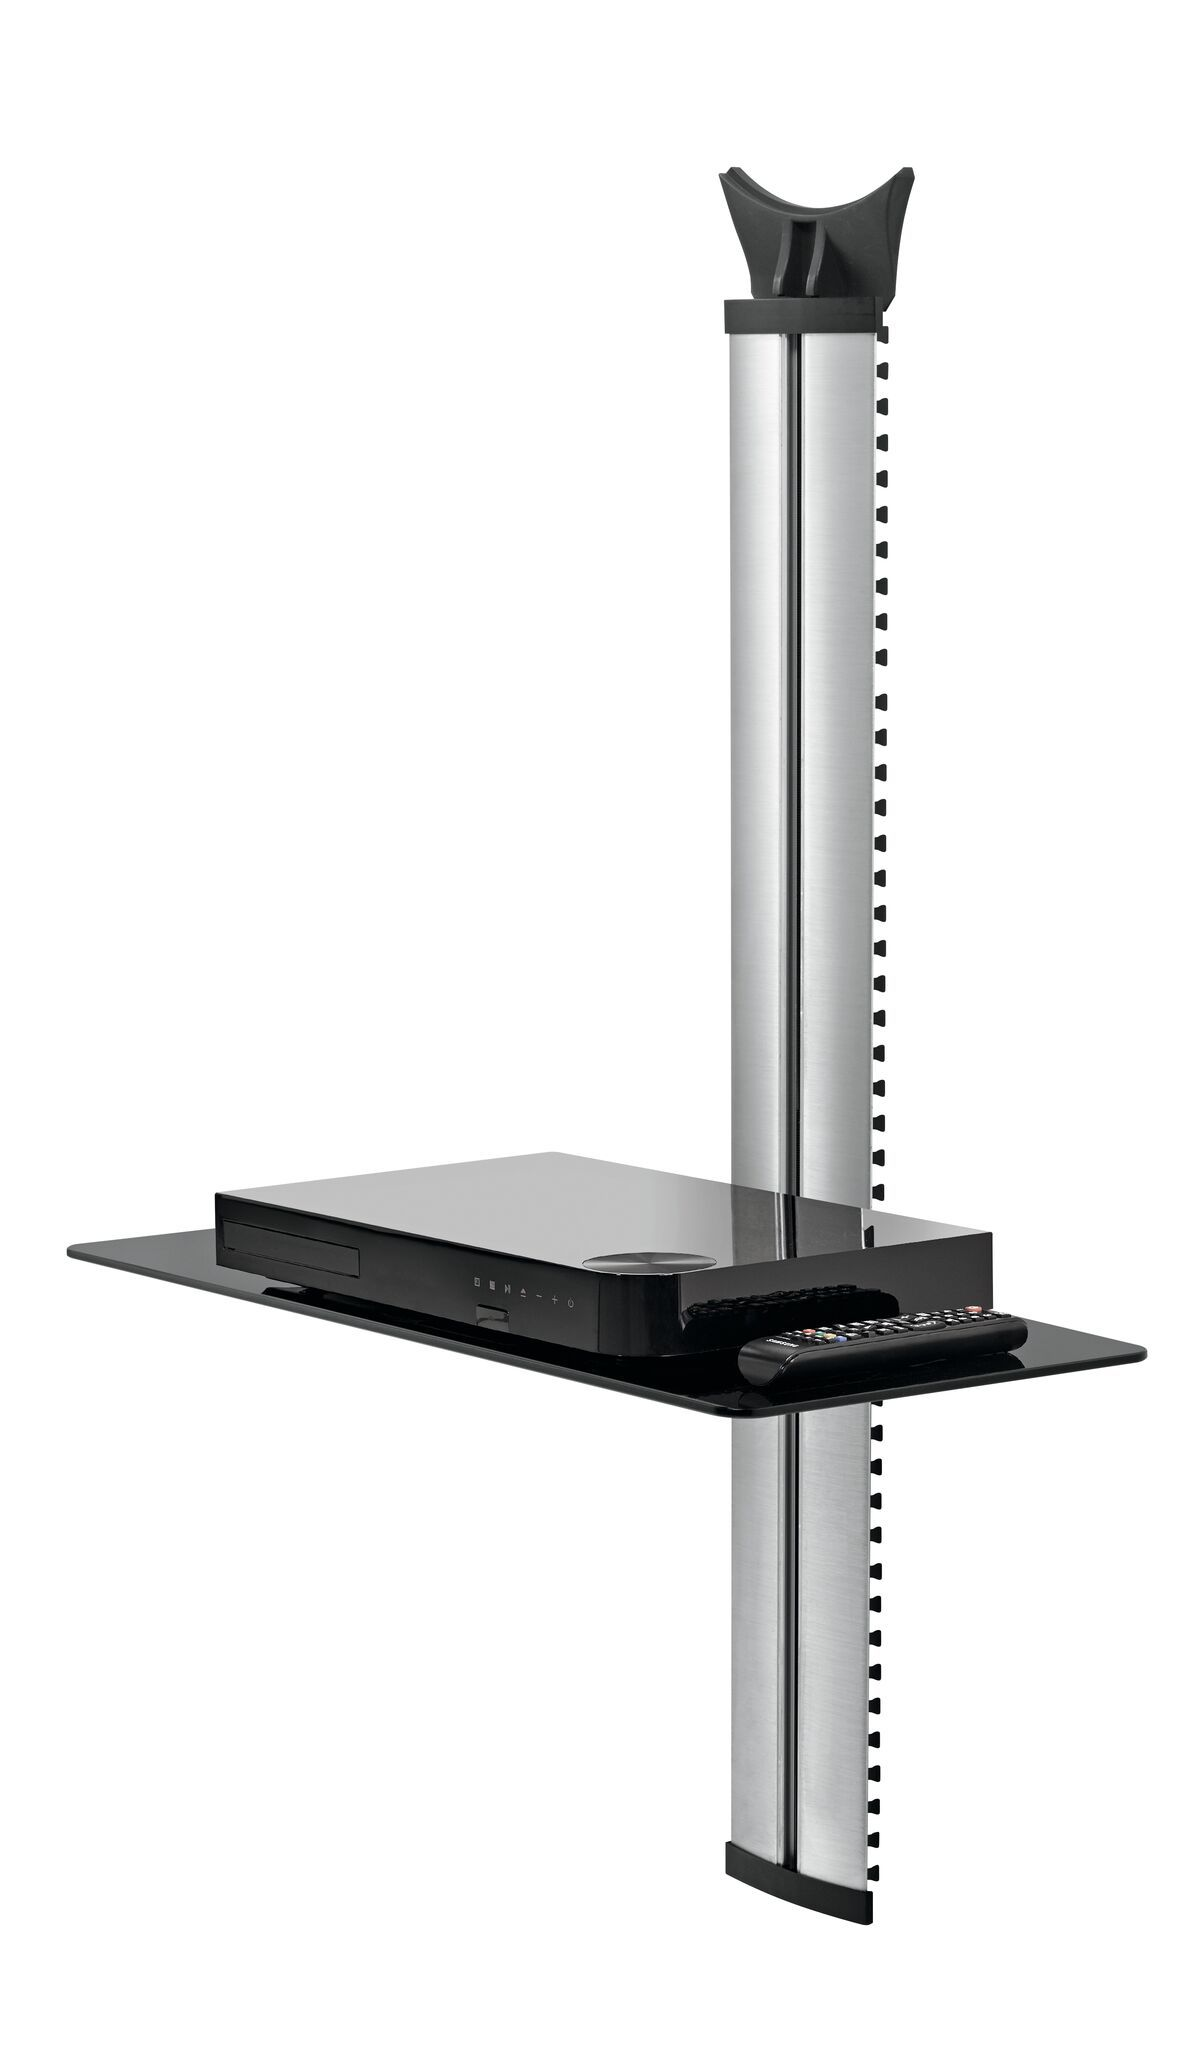 Vogel's NEXT 7840 Cable Column - Max. aantal kabels in kabelgoot: Tot 10 kabels - Lengte: 100 cm - Application